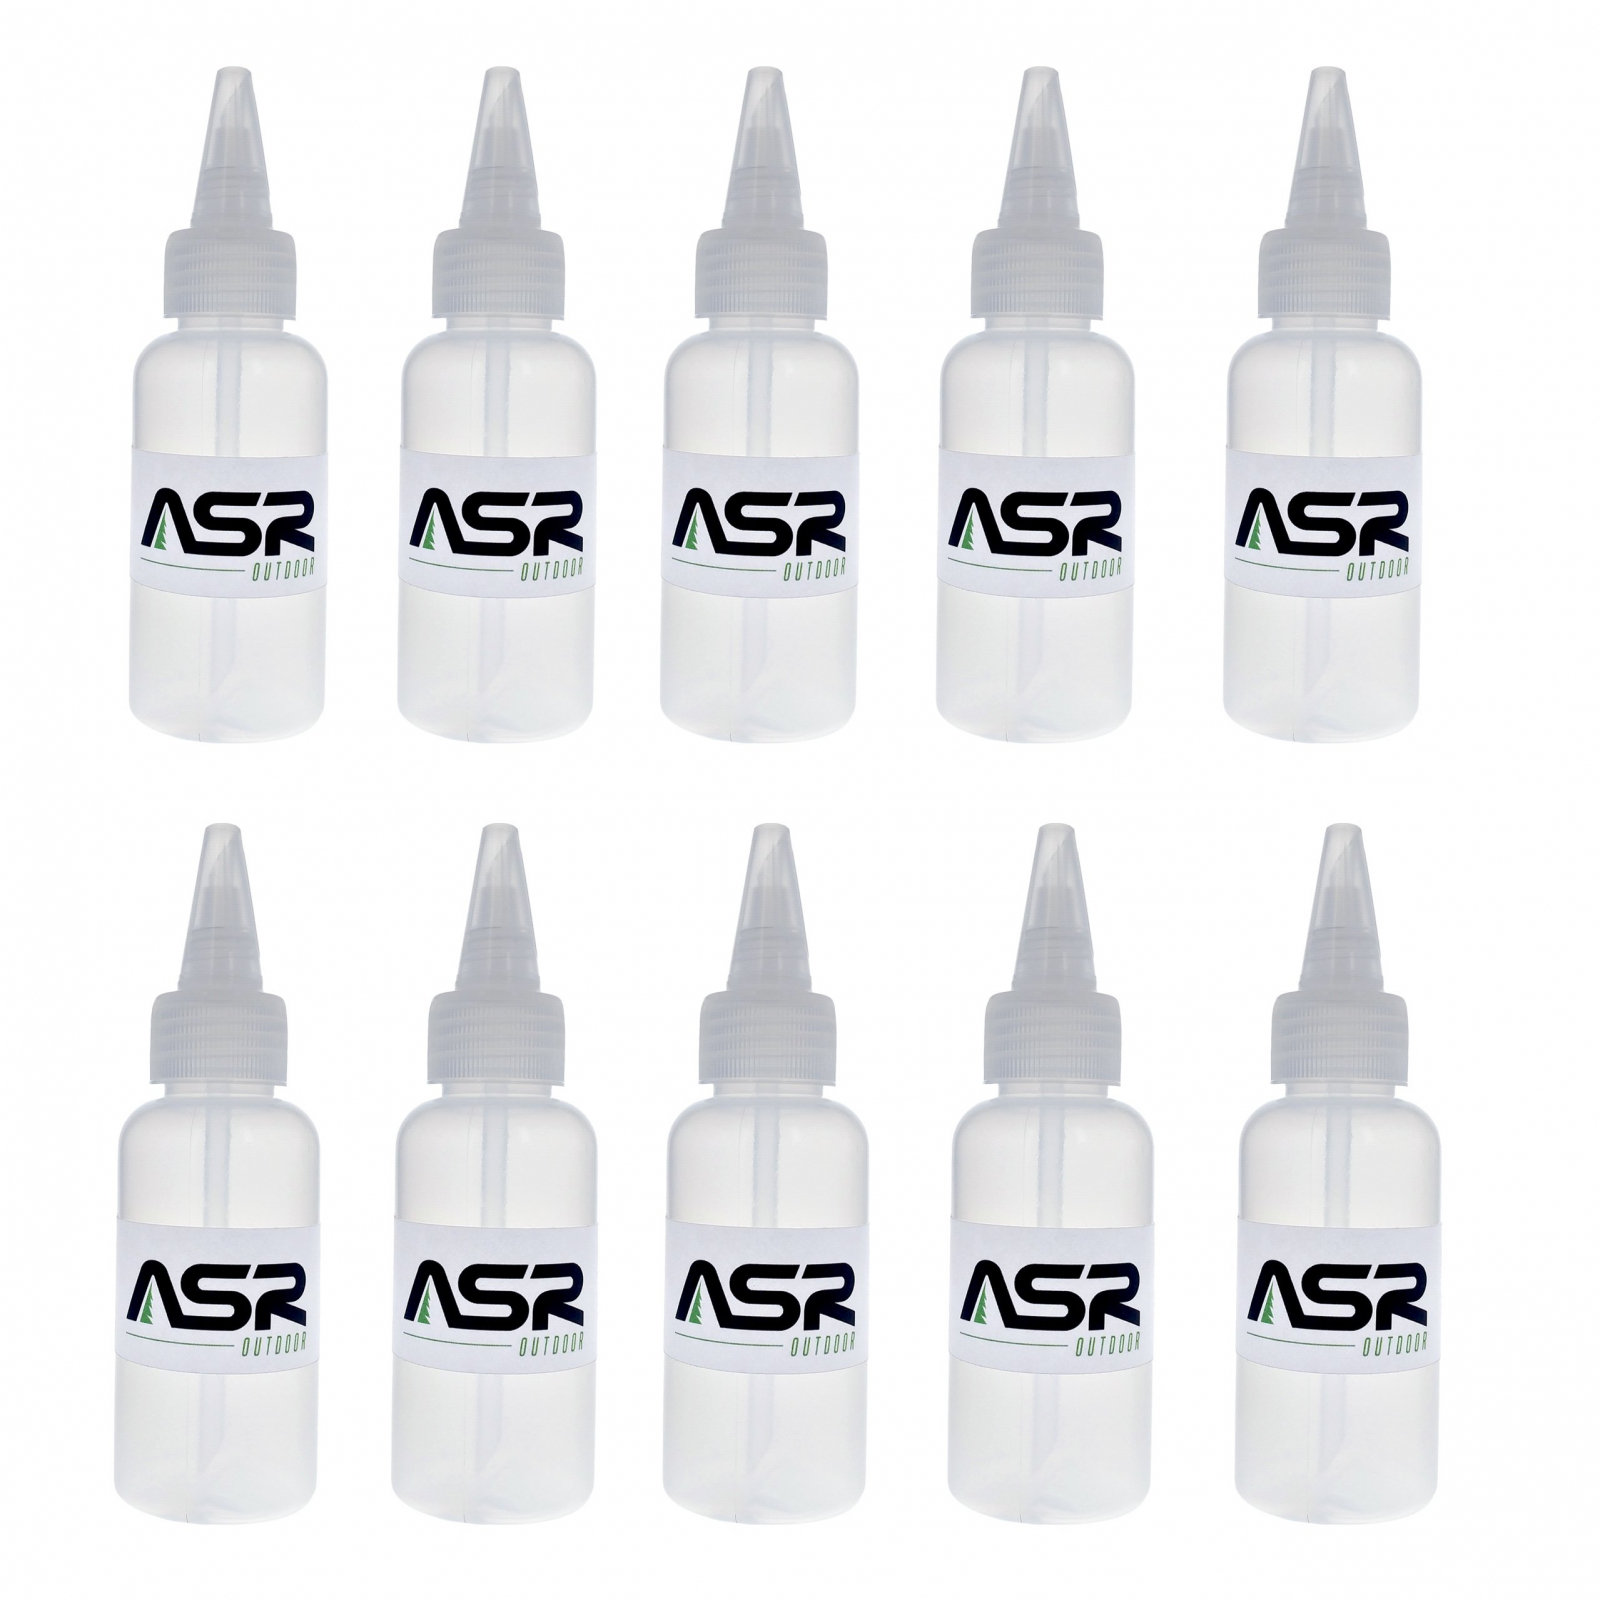 (10 Pack) ASR Outdoor 5in Plastic Heavy Duty Gold Snifter Bottle with Nozzle